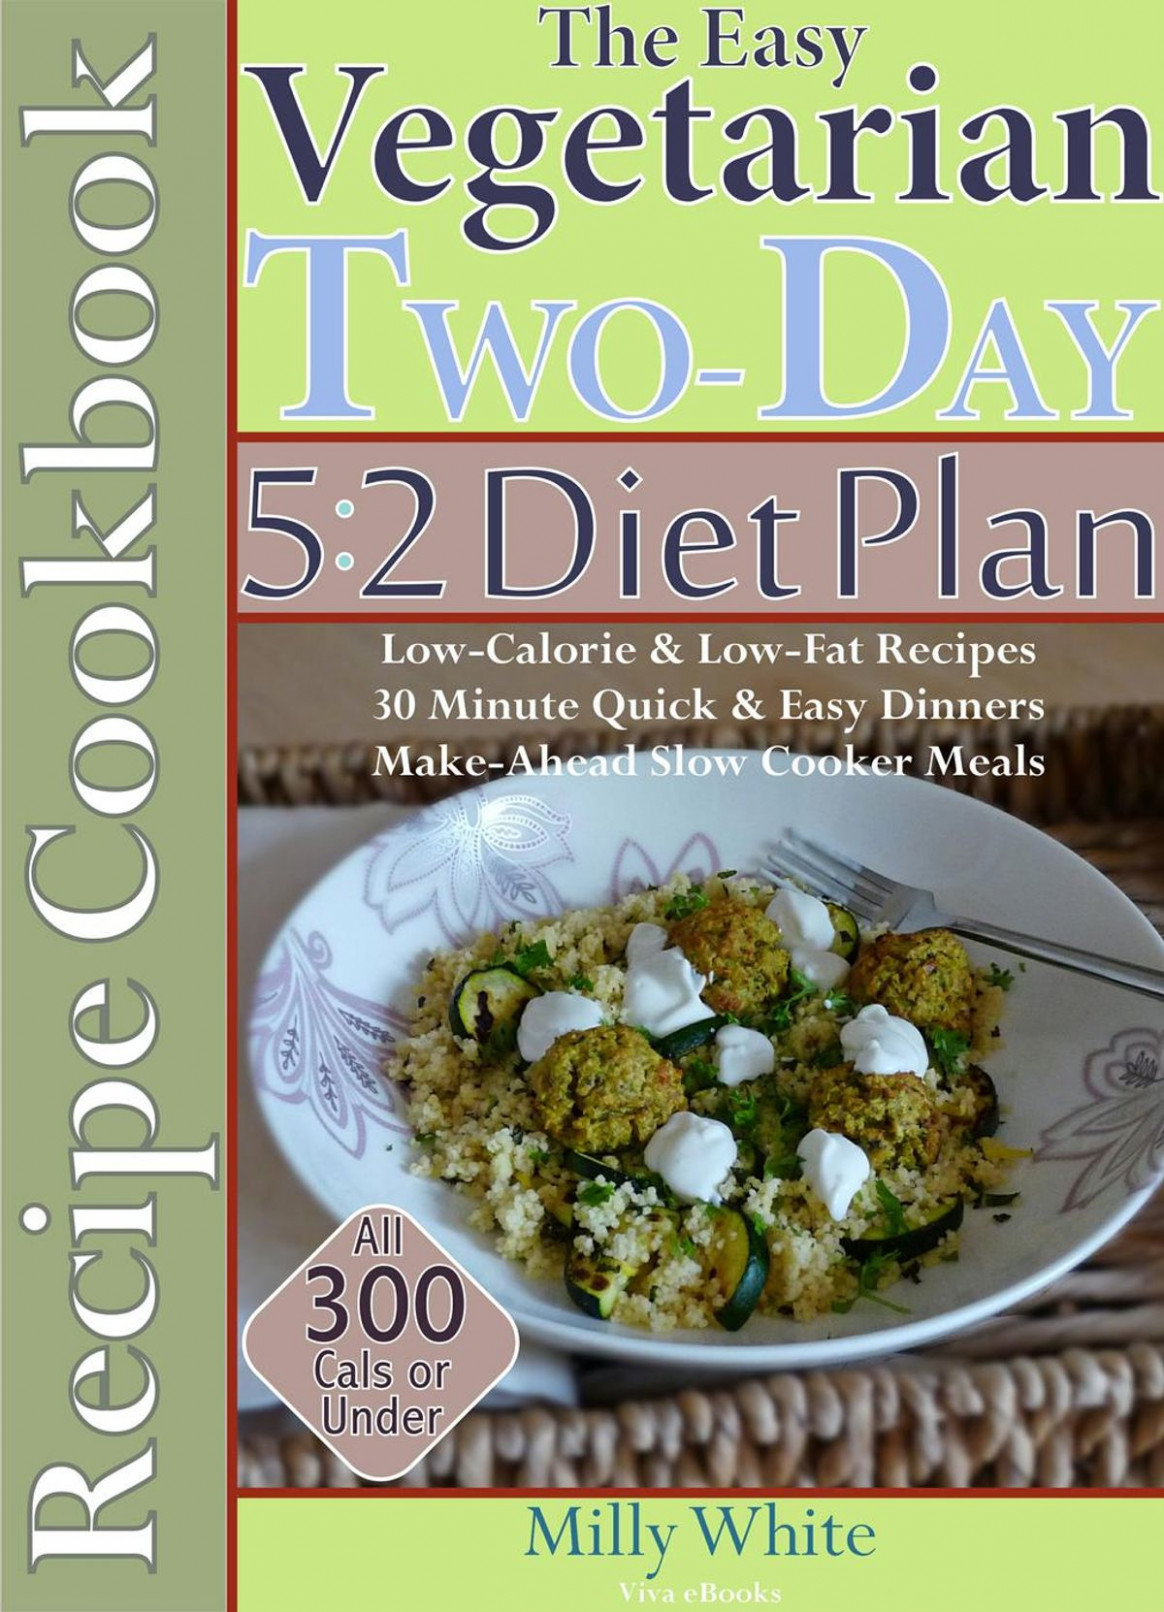 The Easy Vegetarian Two-Day 13:13 Diet Plan Recipe Cookbook All 13 Calories  & Under, Low-Calorie & Low-Fat Recipes, Make-Ahead Slow Cooker Meals, 13 ..